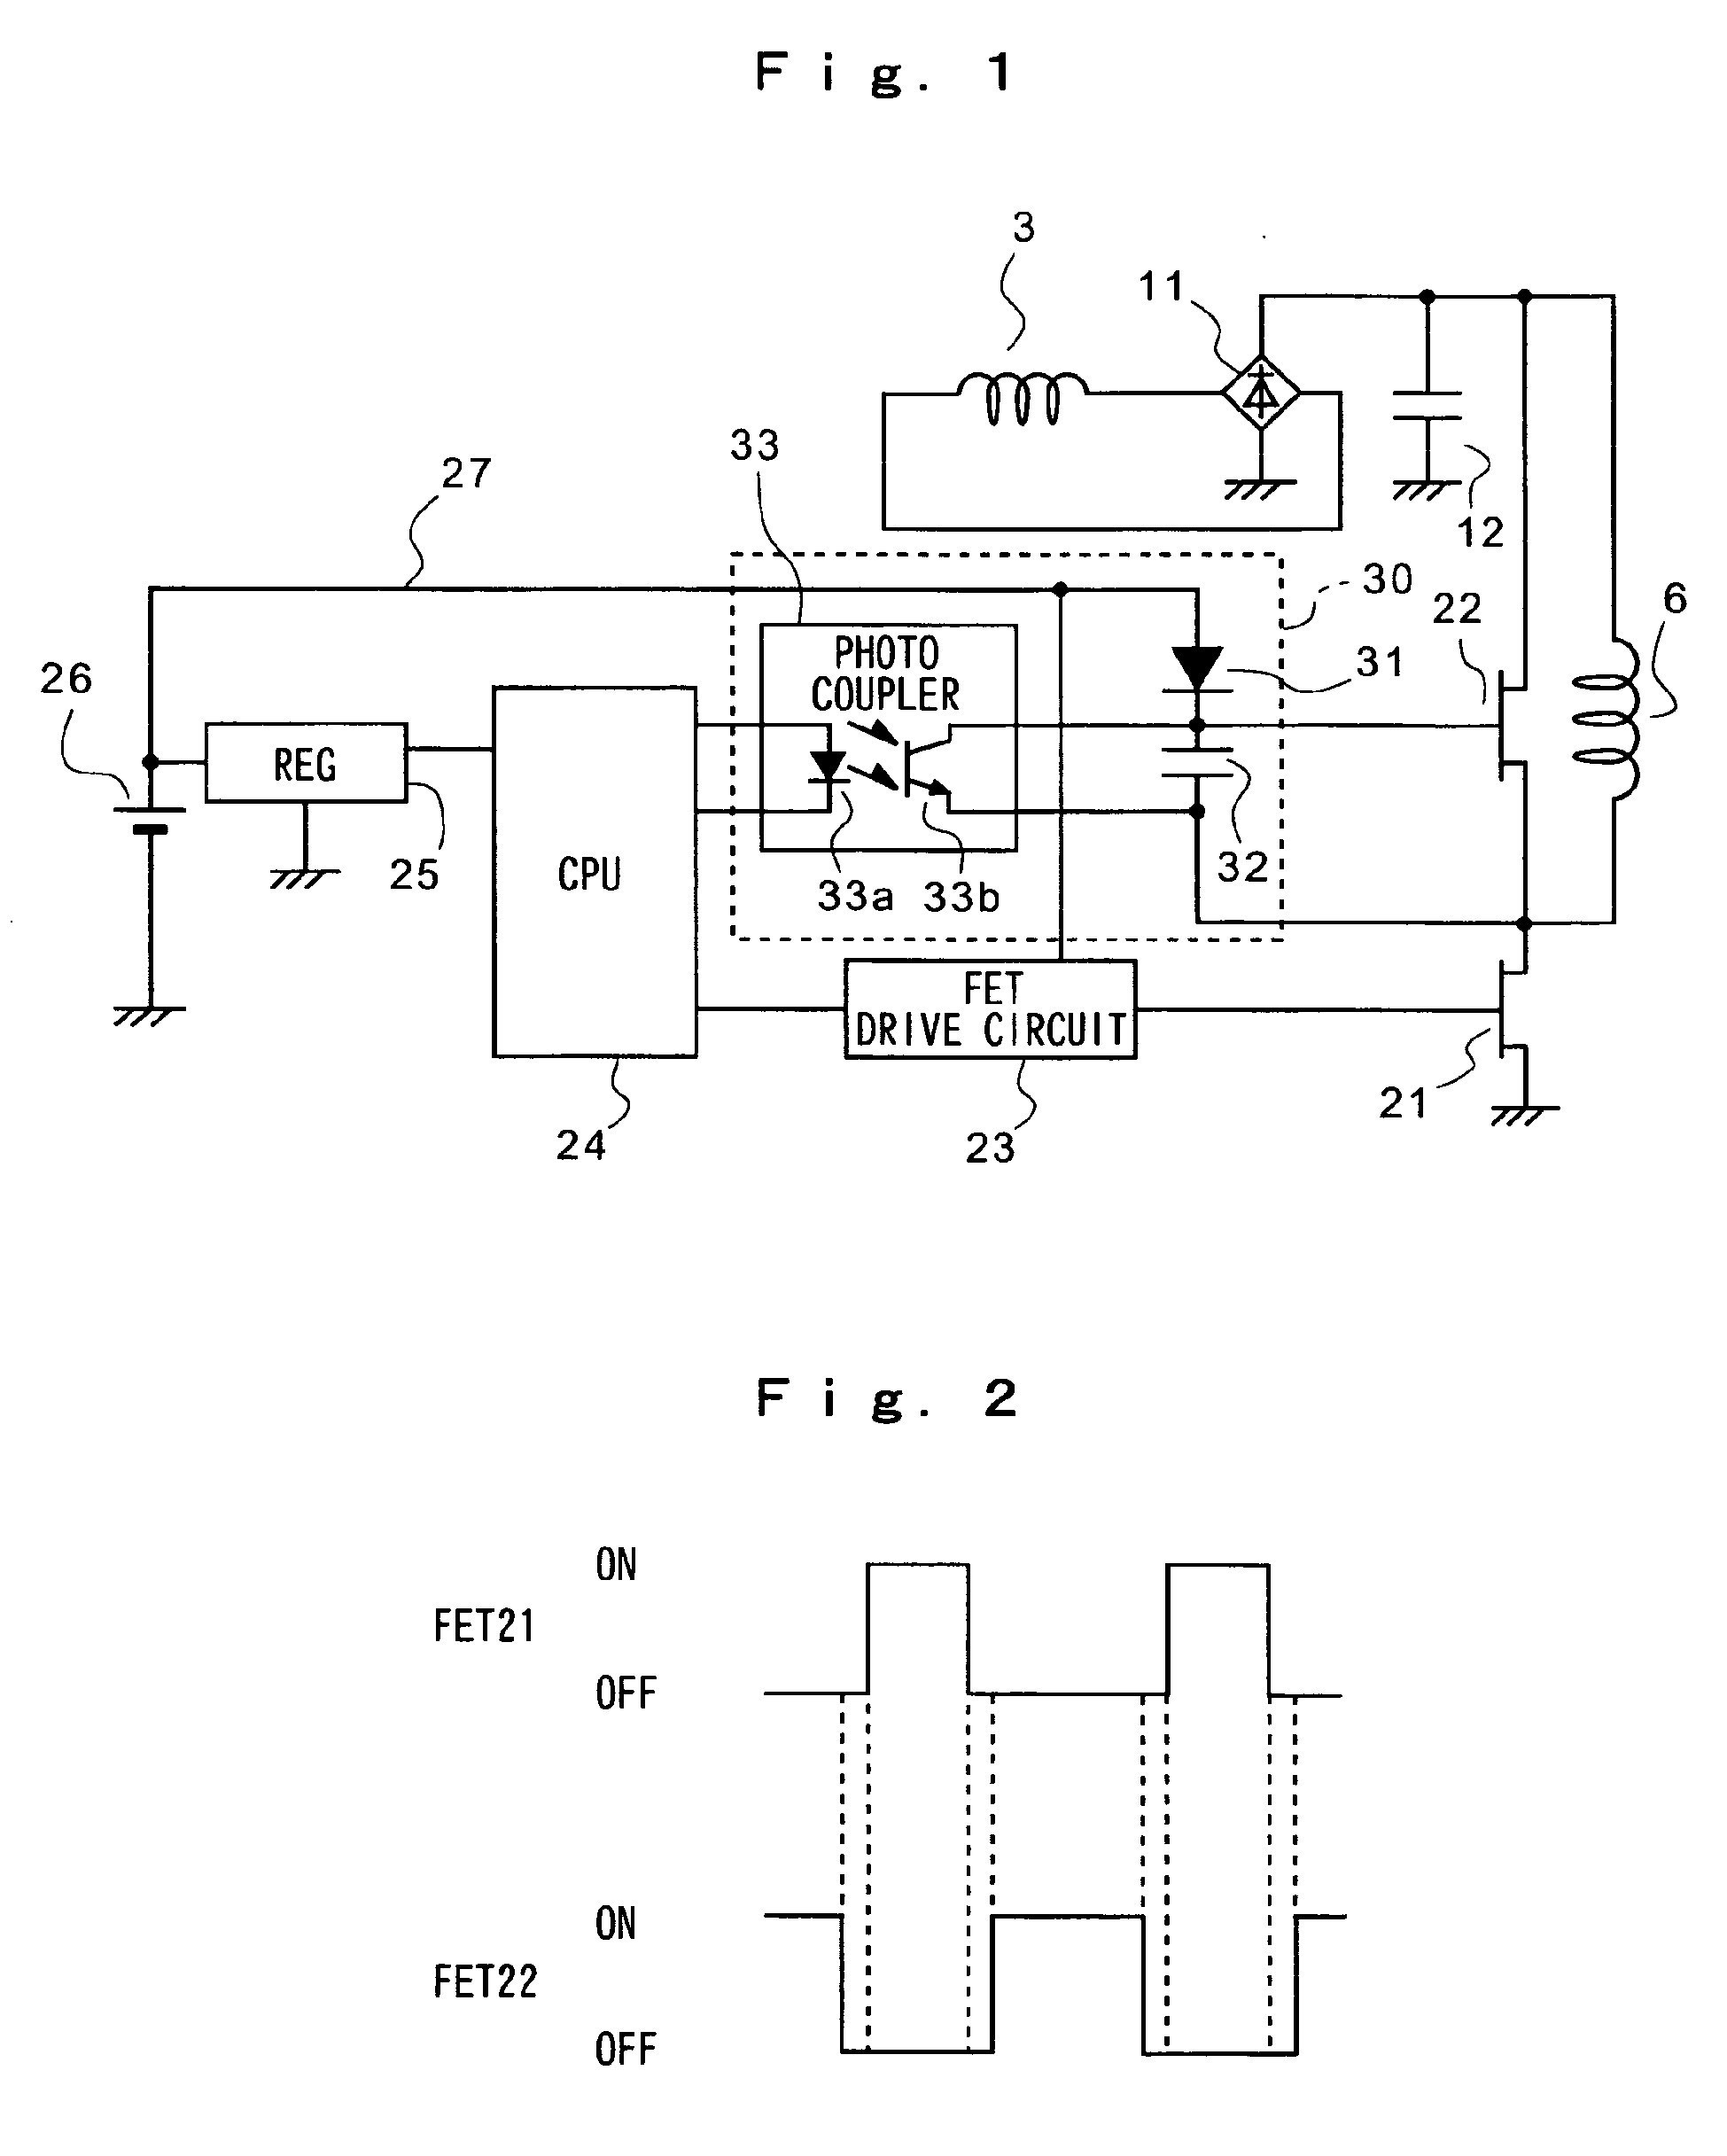 wiring a light switch at beginning of circuit